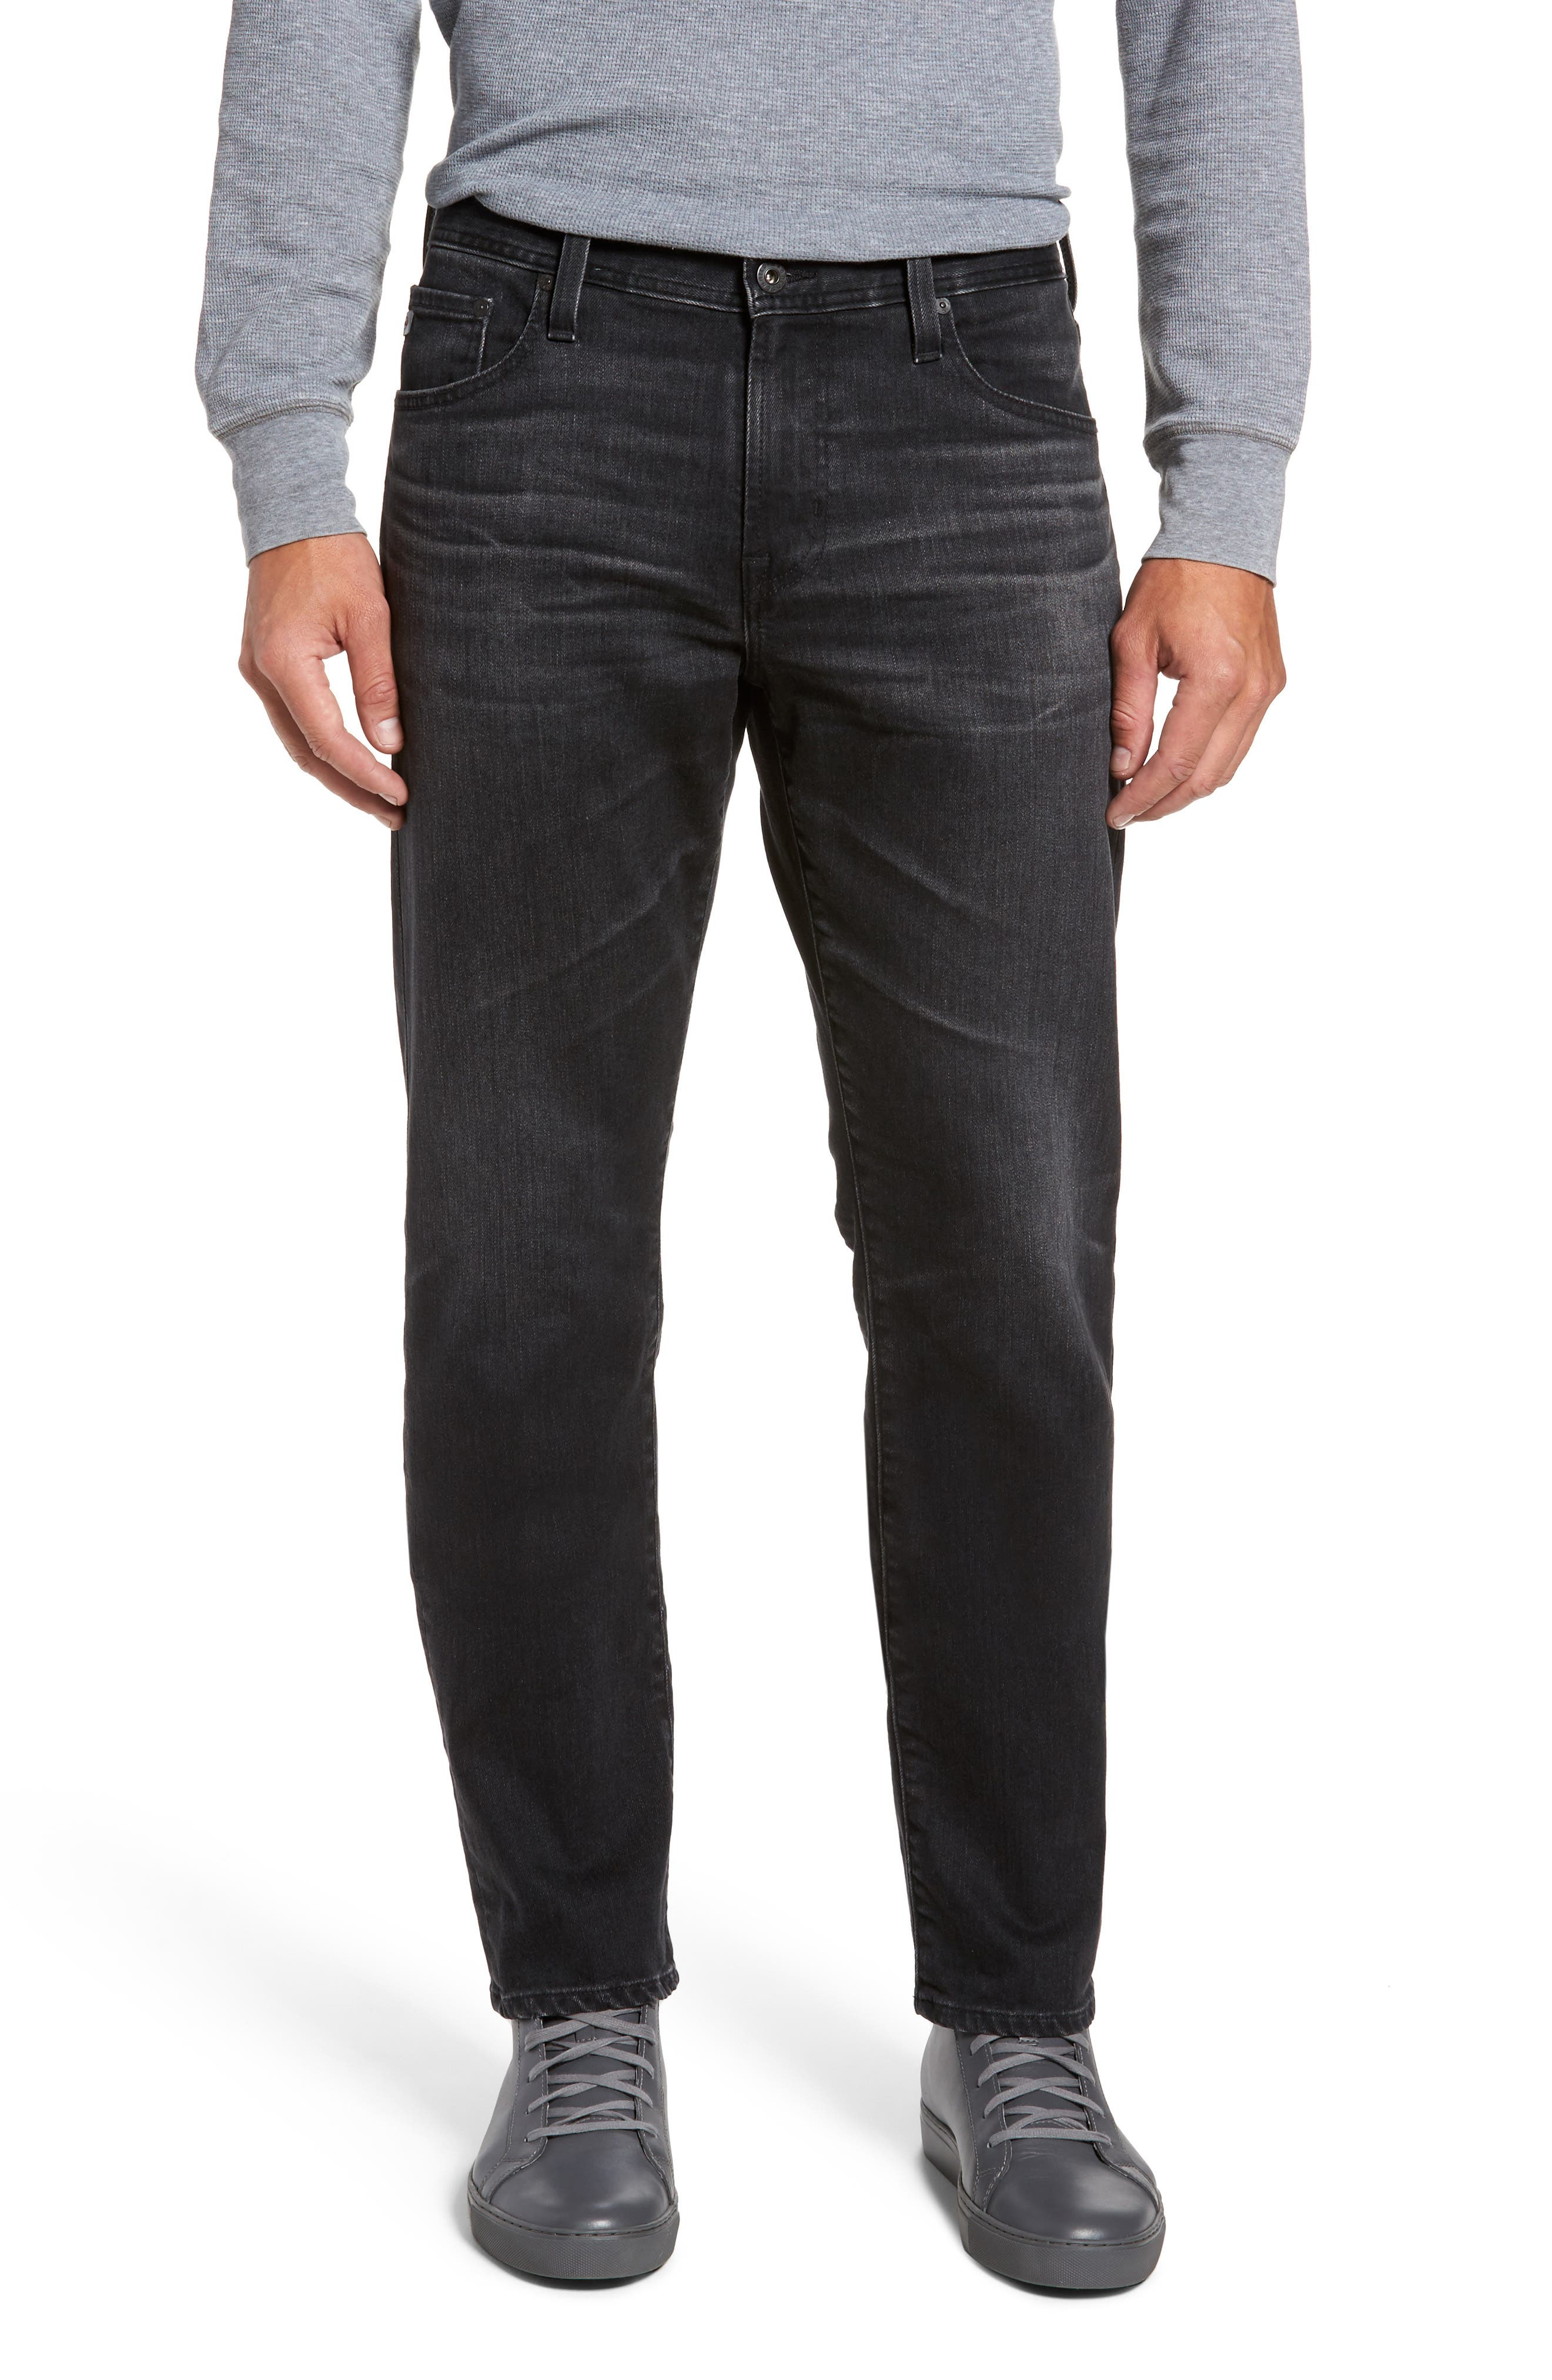 Alternate Image 1 Selected - AG Graduate Slim Straight Fit Jeans (7 Years Asphalt)